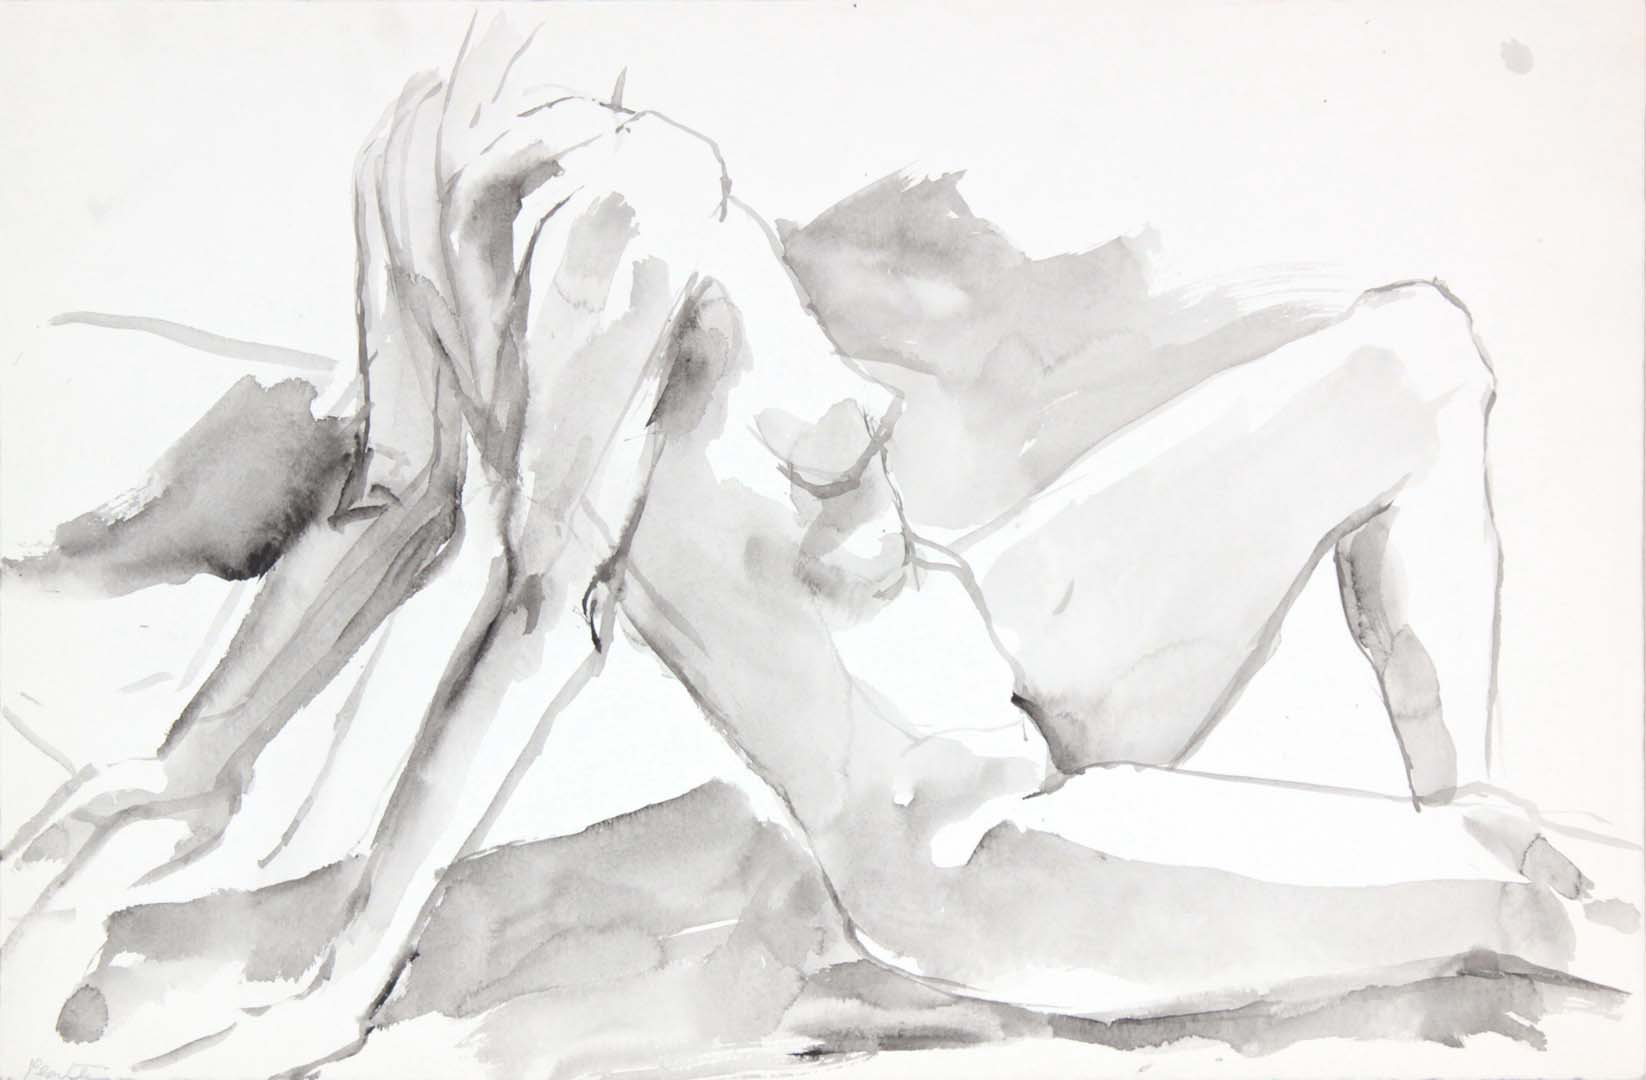 Female Model Leaning Back Wash 13.625 x 20.75